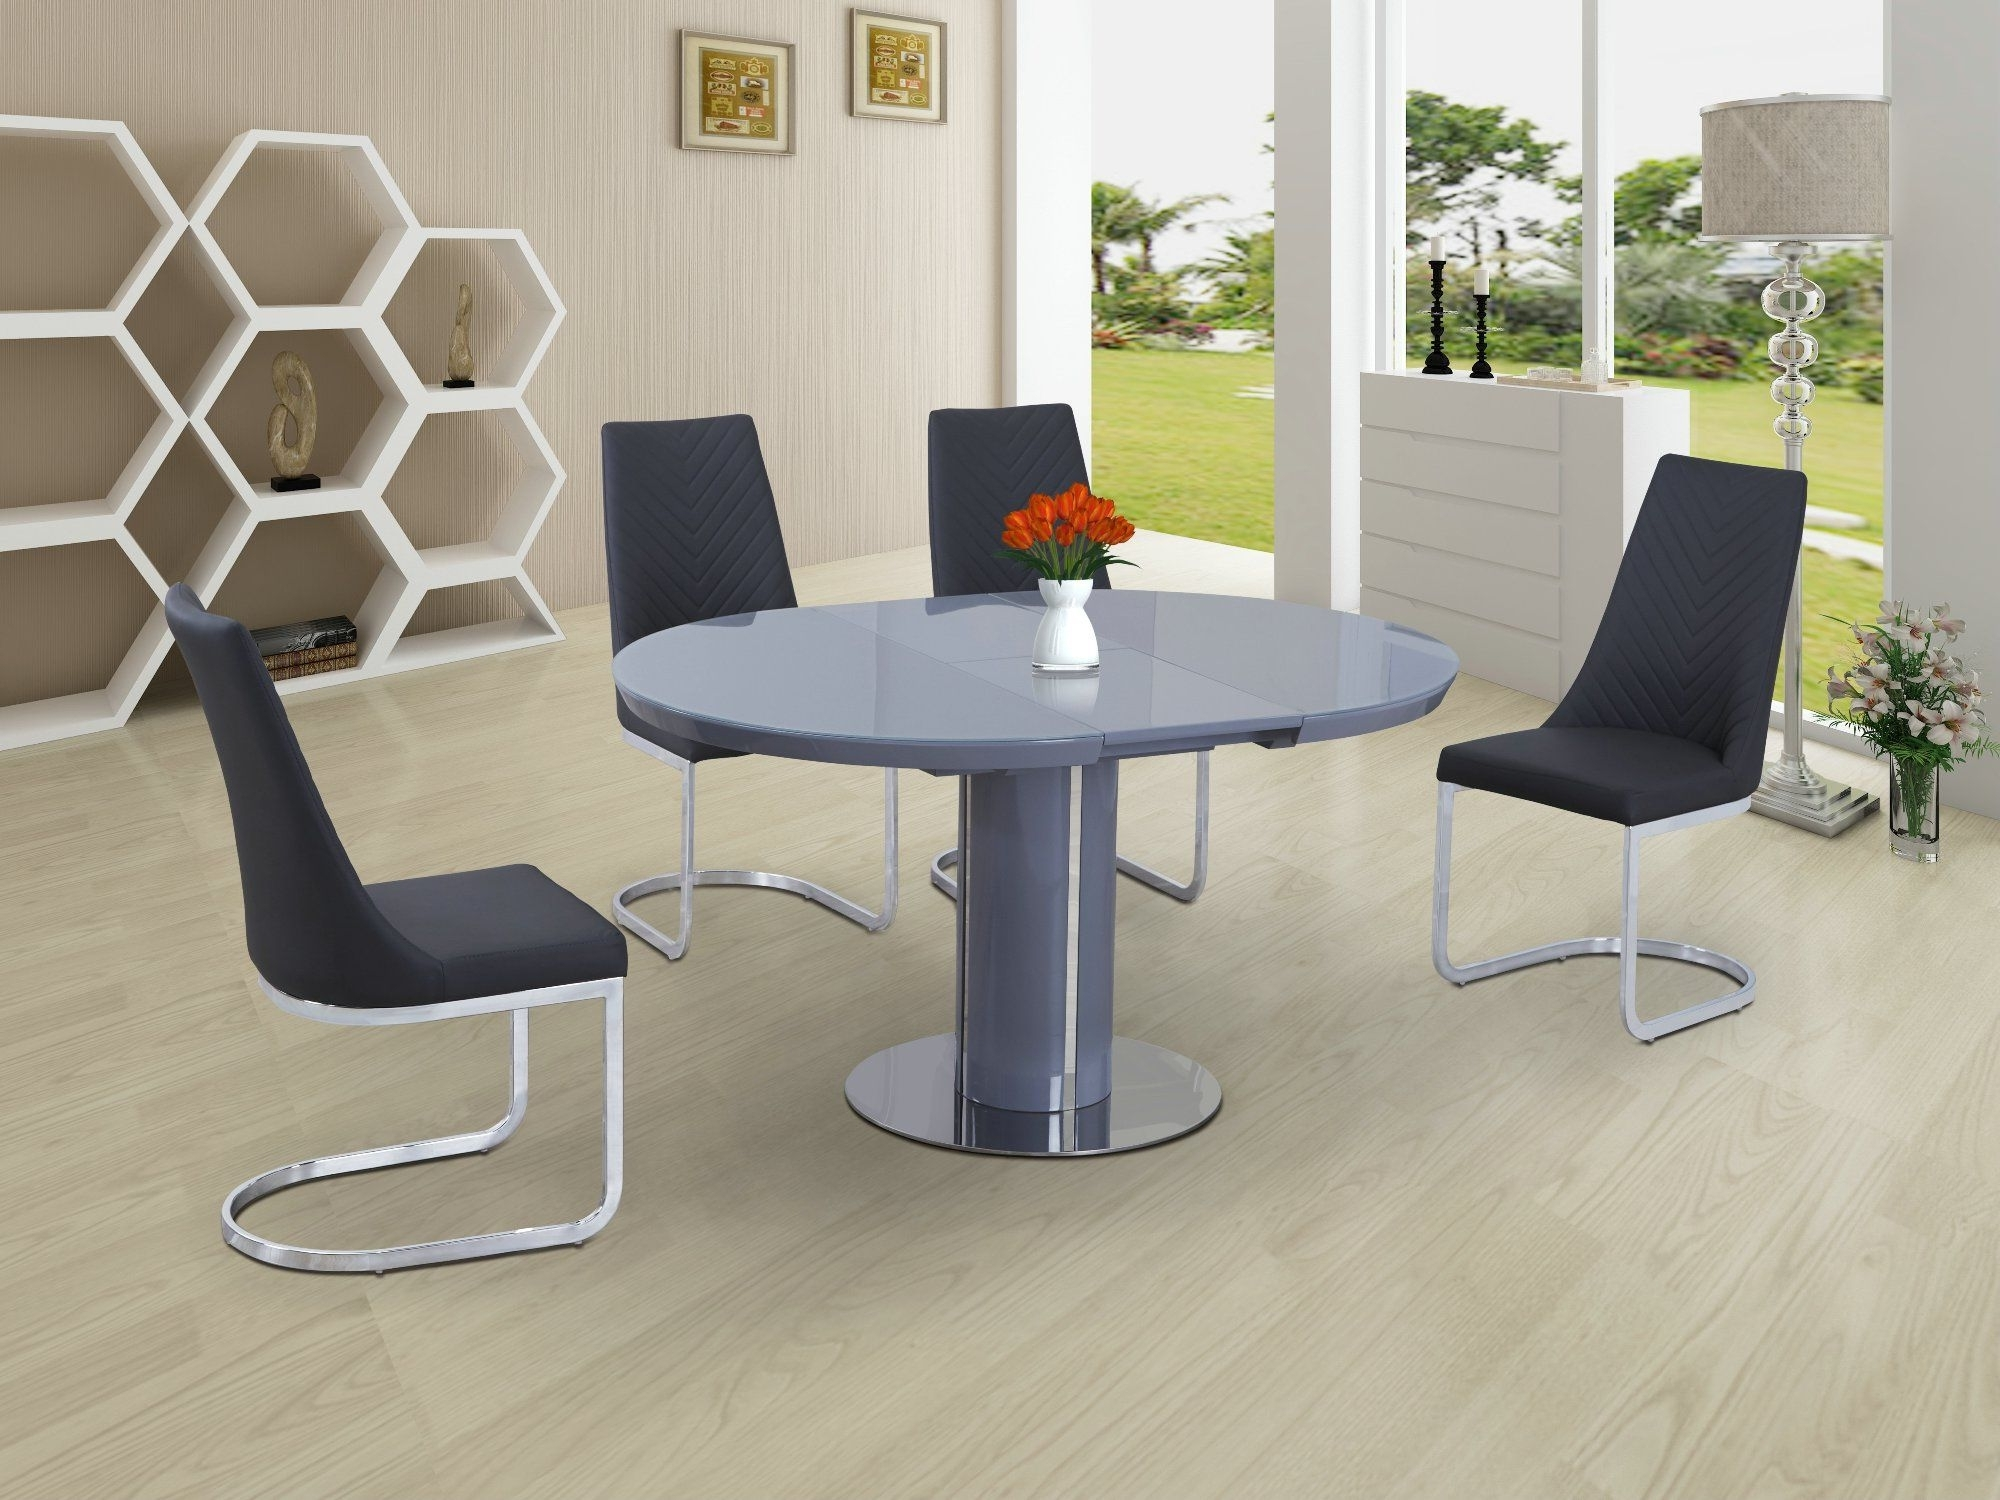 Best And Newest Round Extendable Dining Tables With Regard To Buy Small Round Extendable Dining Table Today (View 2 of 25)